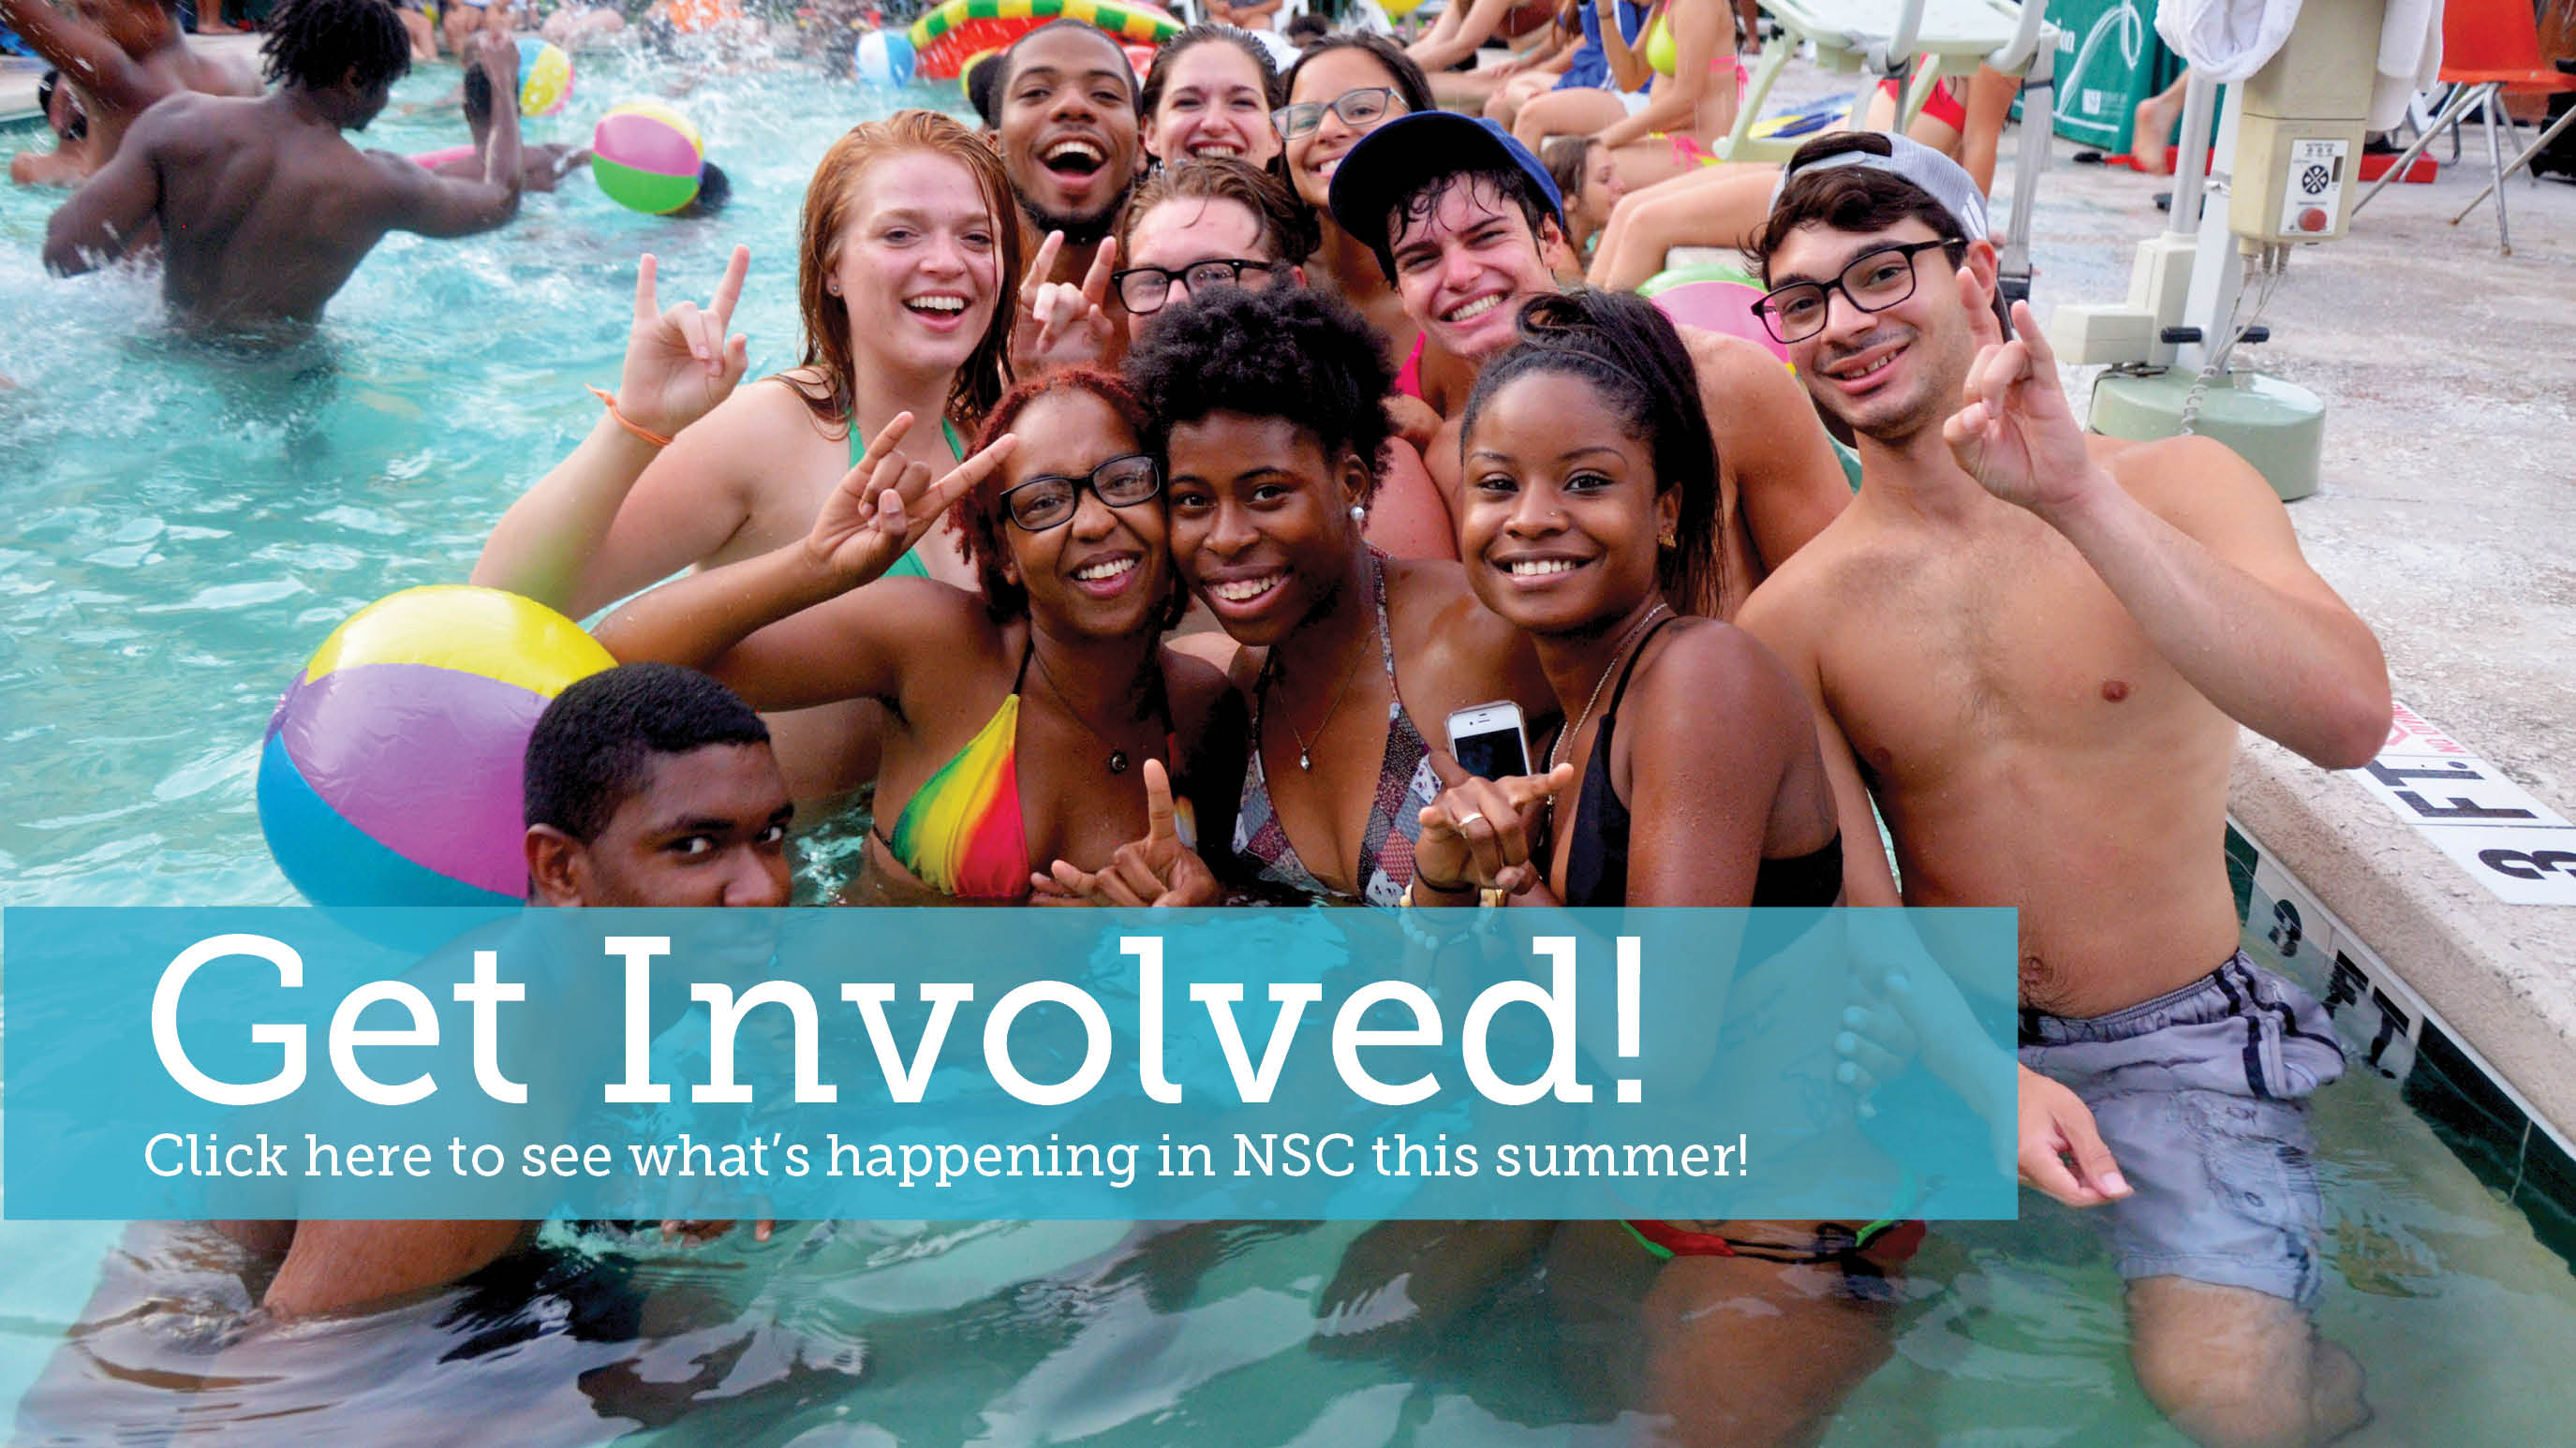 NSC Summer Events